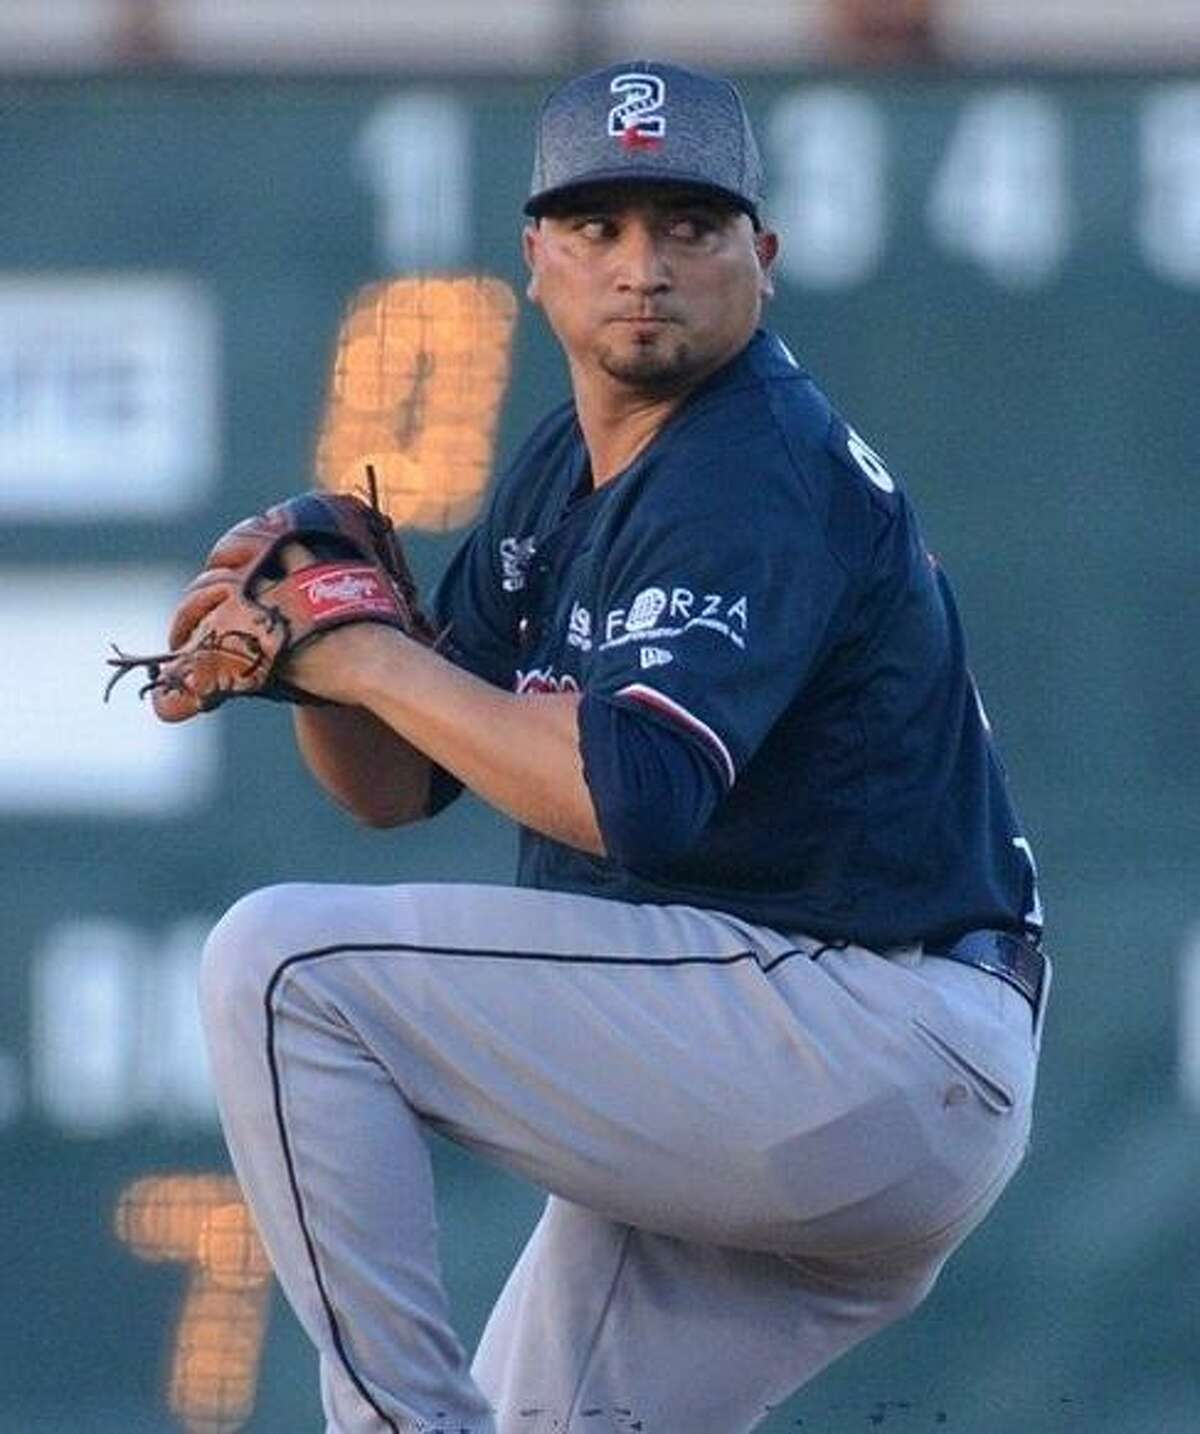 Jose Oyervides became the second consecutive player from the Tecolotes Dos Laredos to win the LMB's Pitcher of the Week award. Oyervides threw 12 scoreless innings in two games this week.